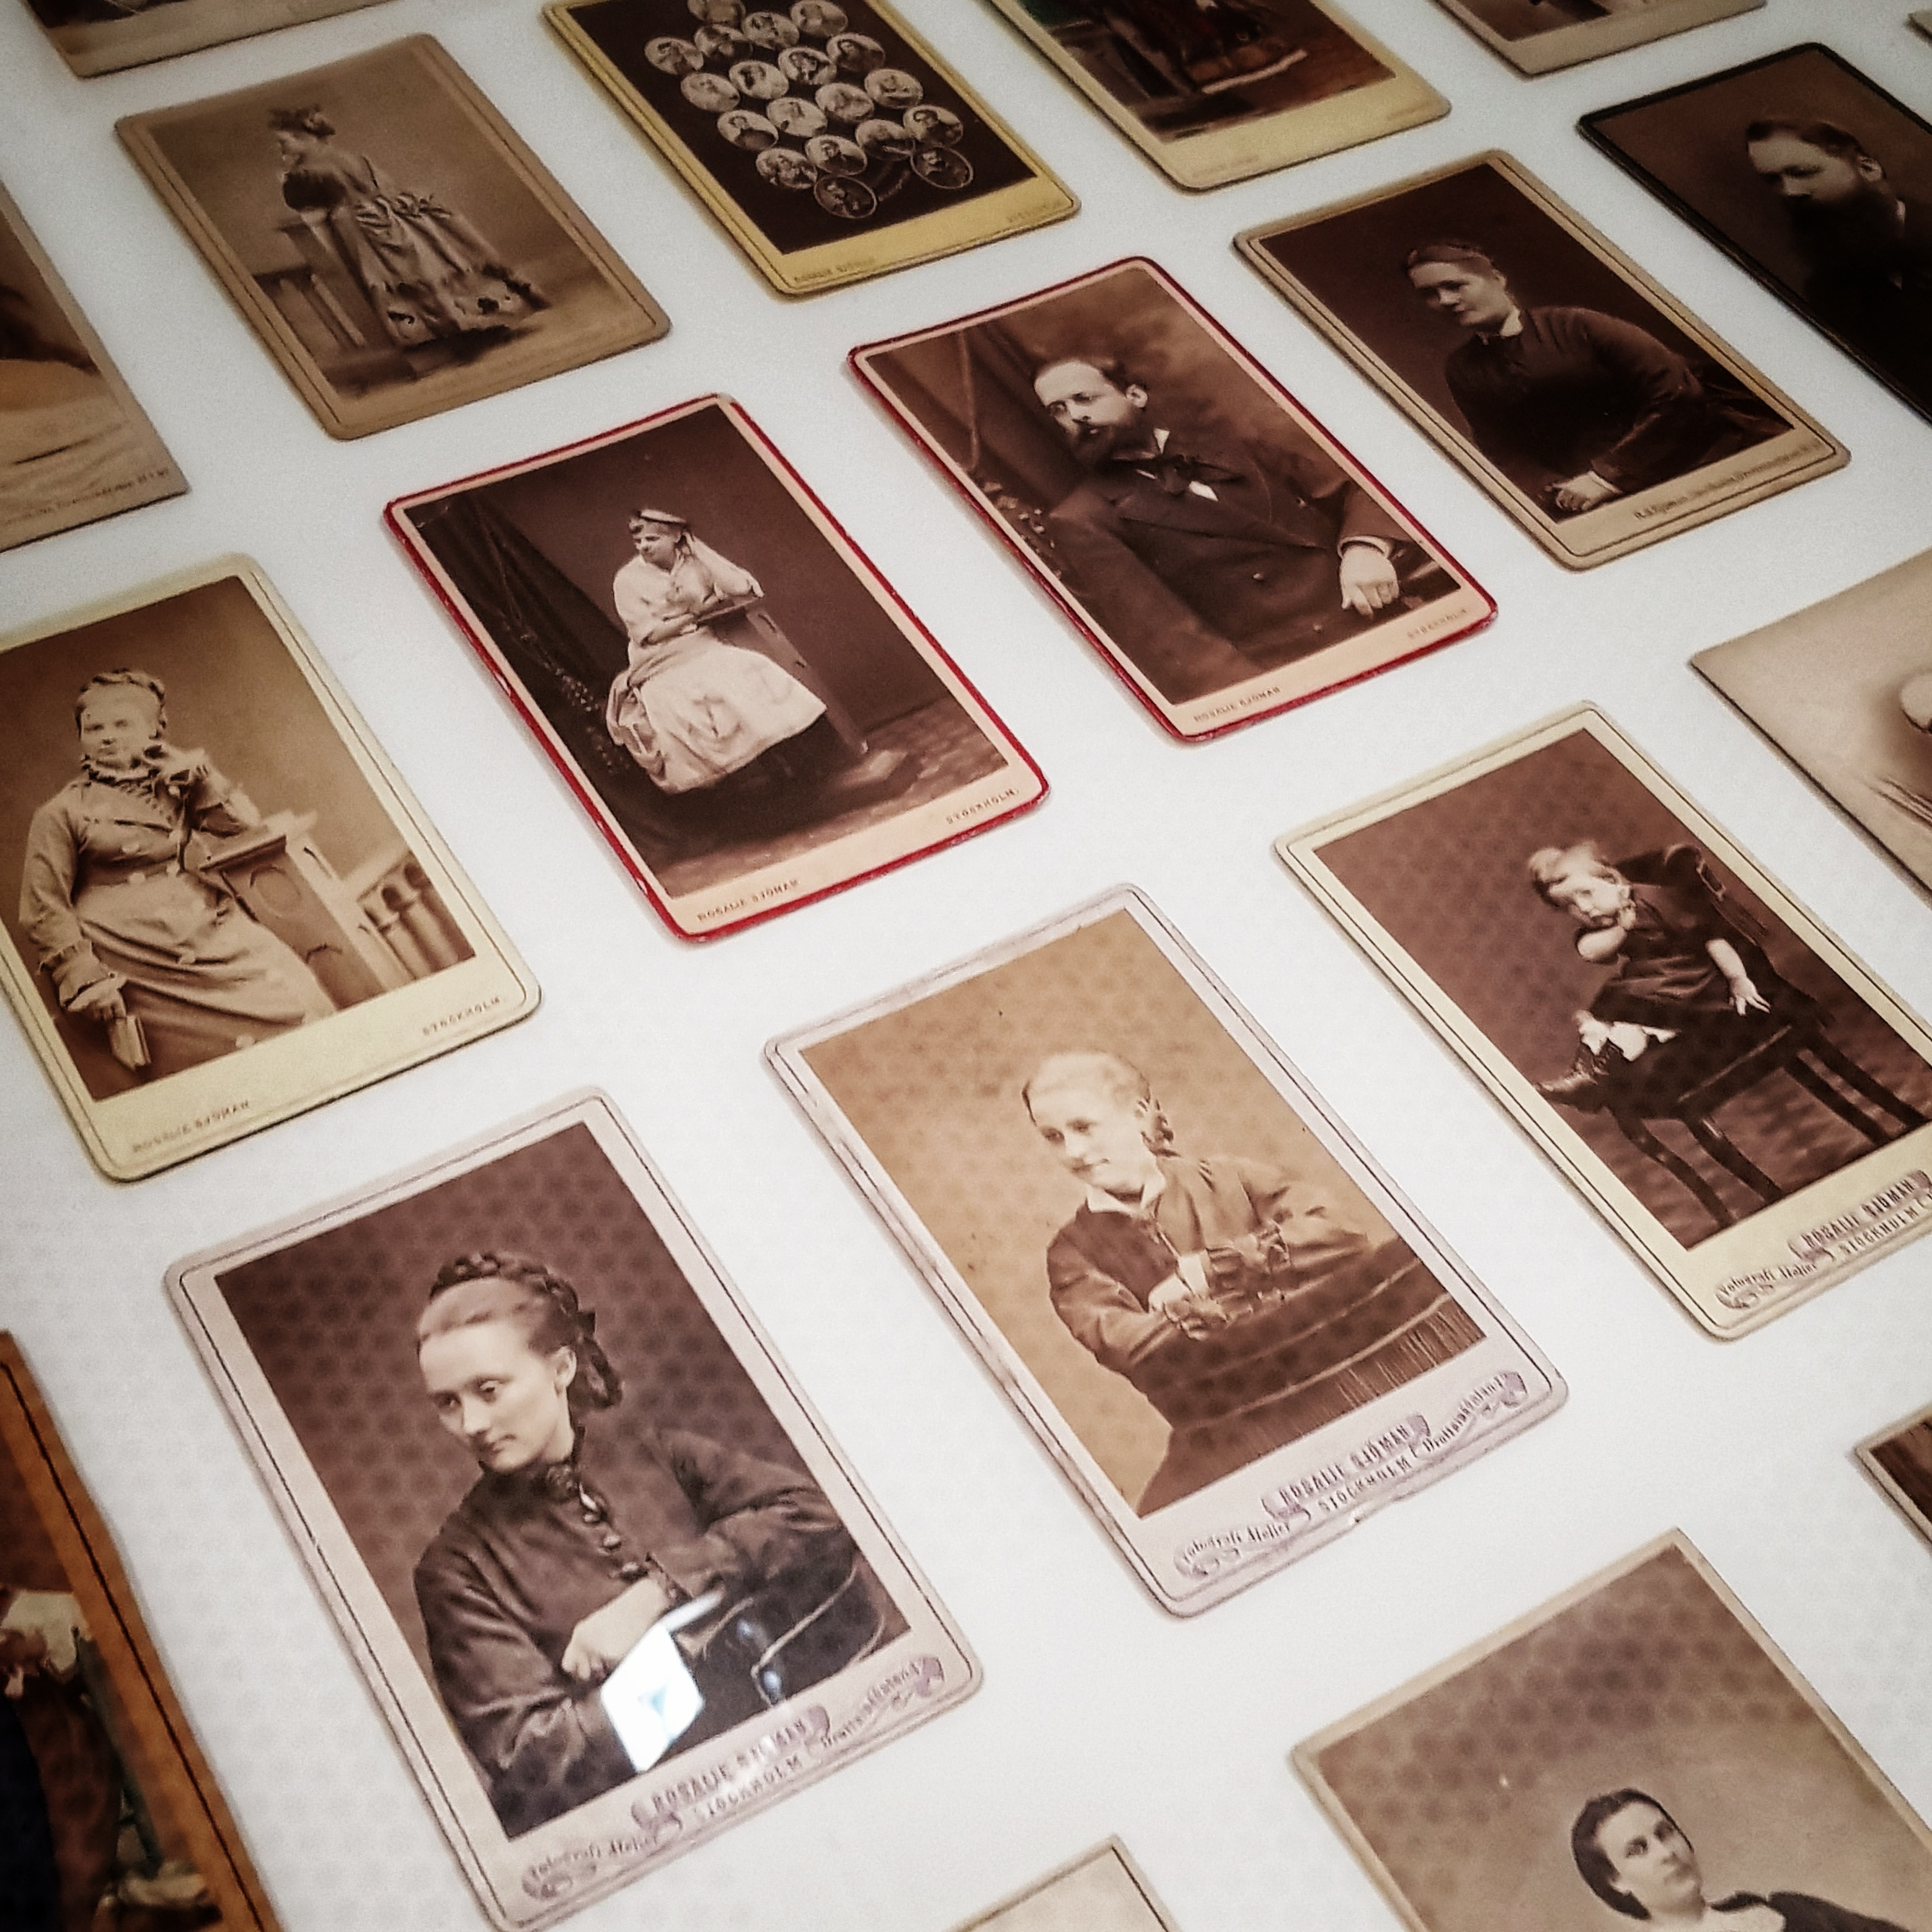 Day 170 - June 19: Exhibition with old portrait cards